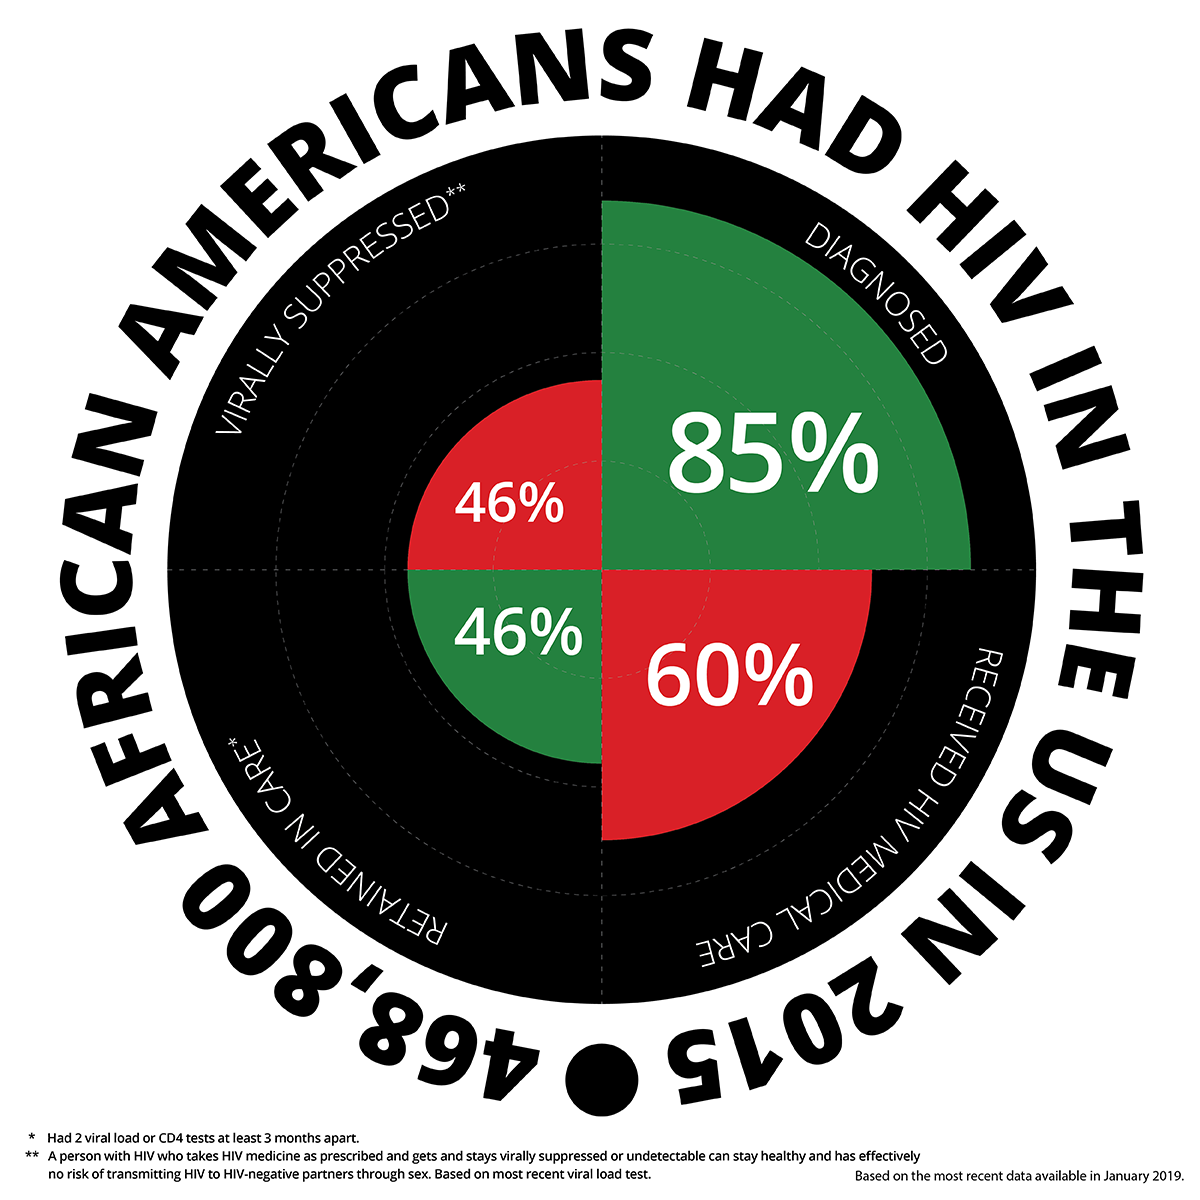 In 2015, 468,800 African Americans had HIV; 85% were aware of their infection, 60% received HIV medical care, 46% were retained in care, and 46% were virally suppressed.